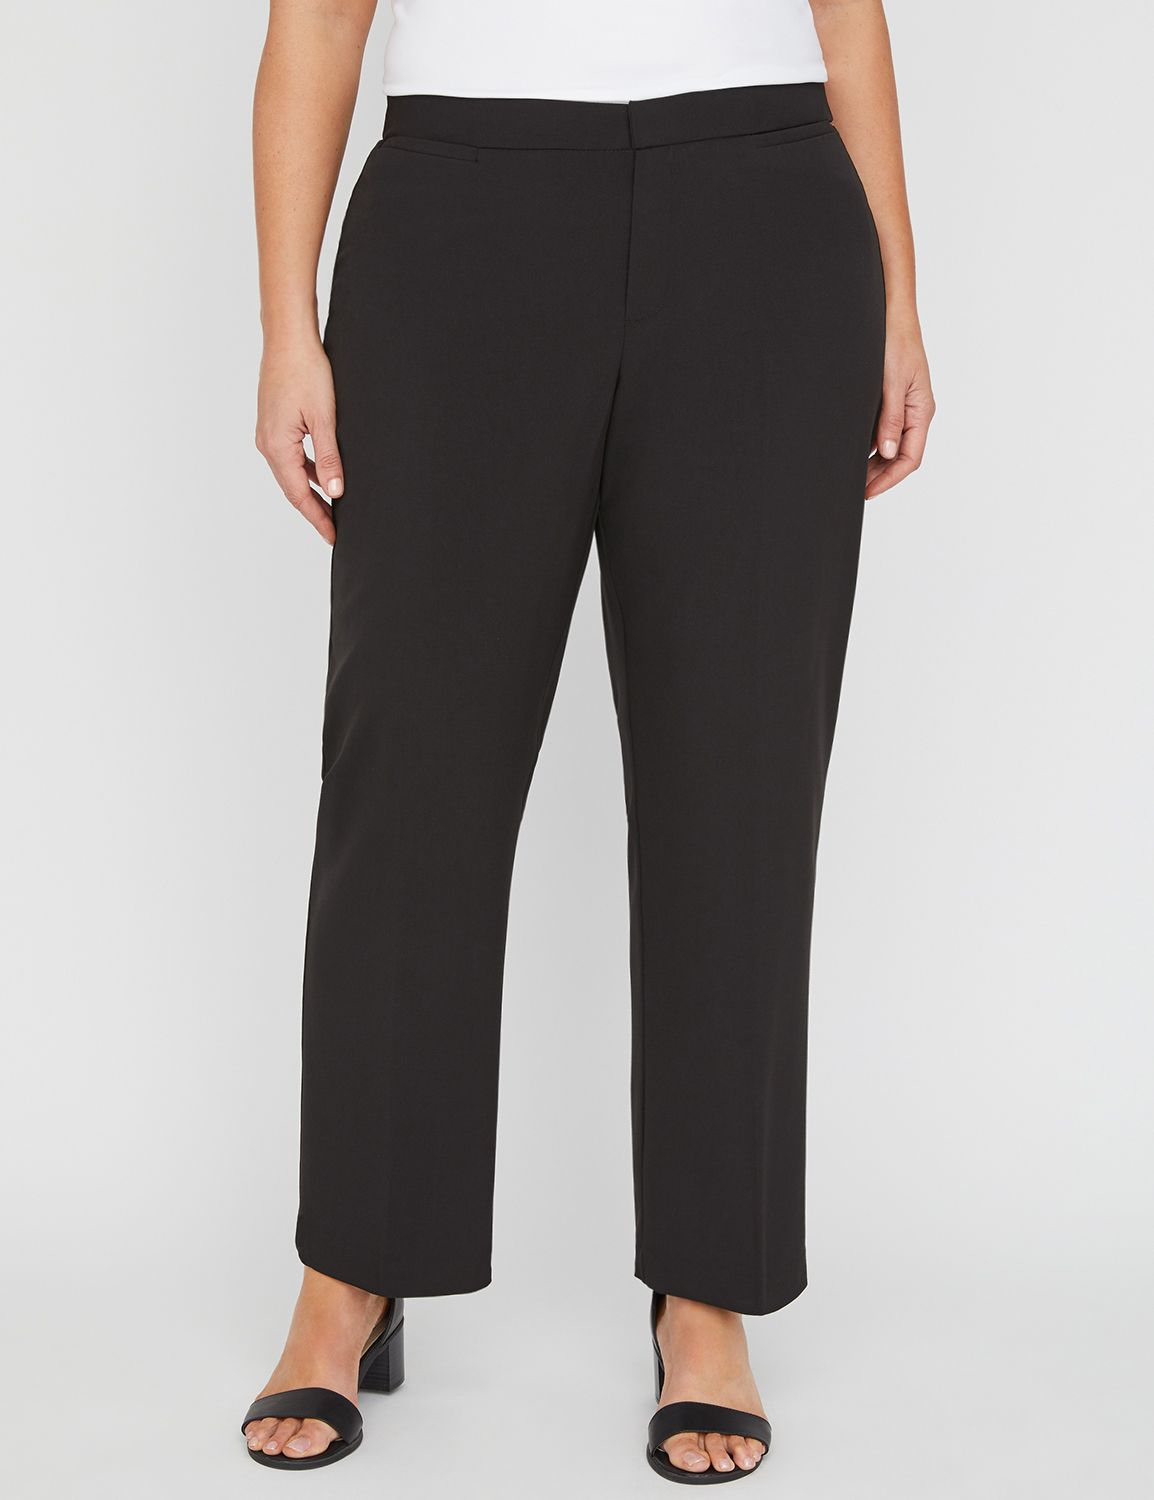 Right Fit Pant (Moderately Curvy) Right Fit Pant (Moderately Curvy) MP-300009900